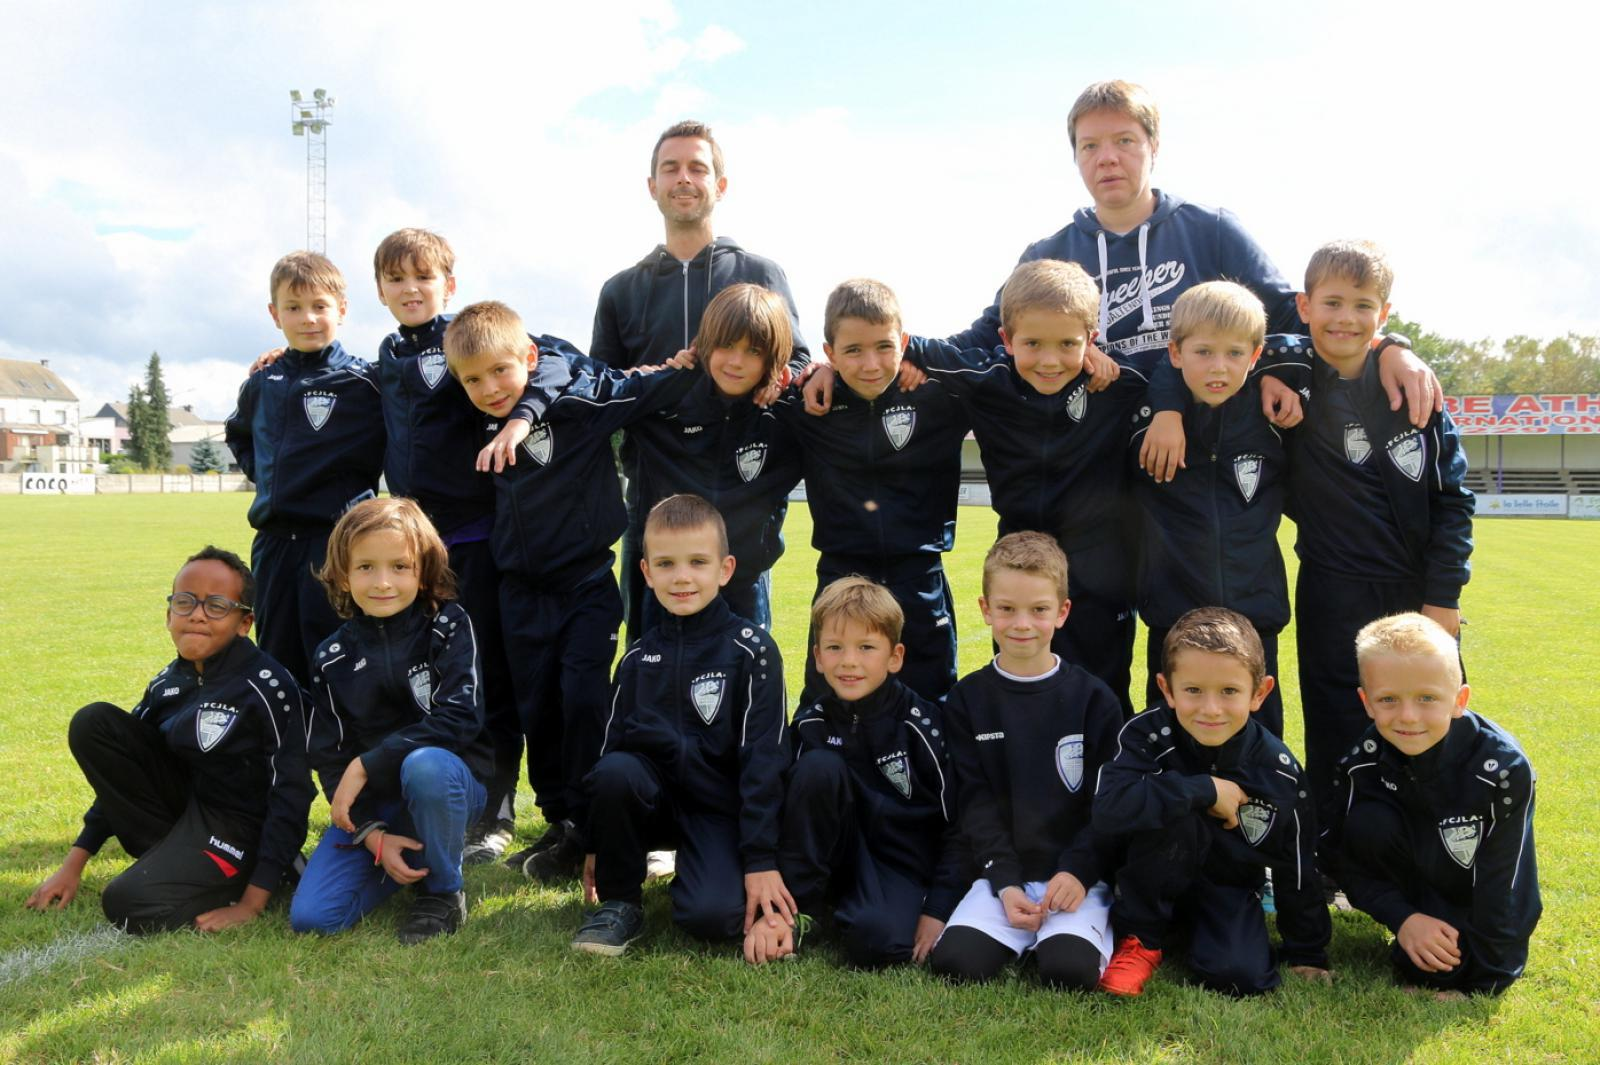 U9 Série C - Football Club Arlon